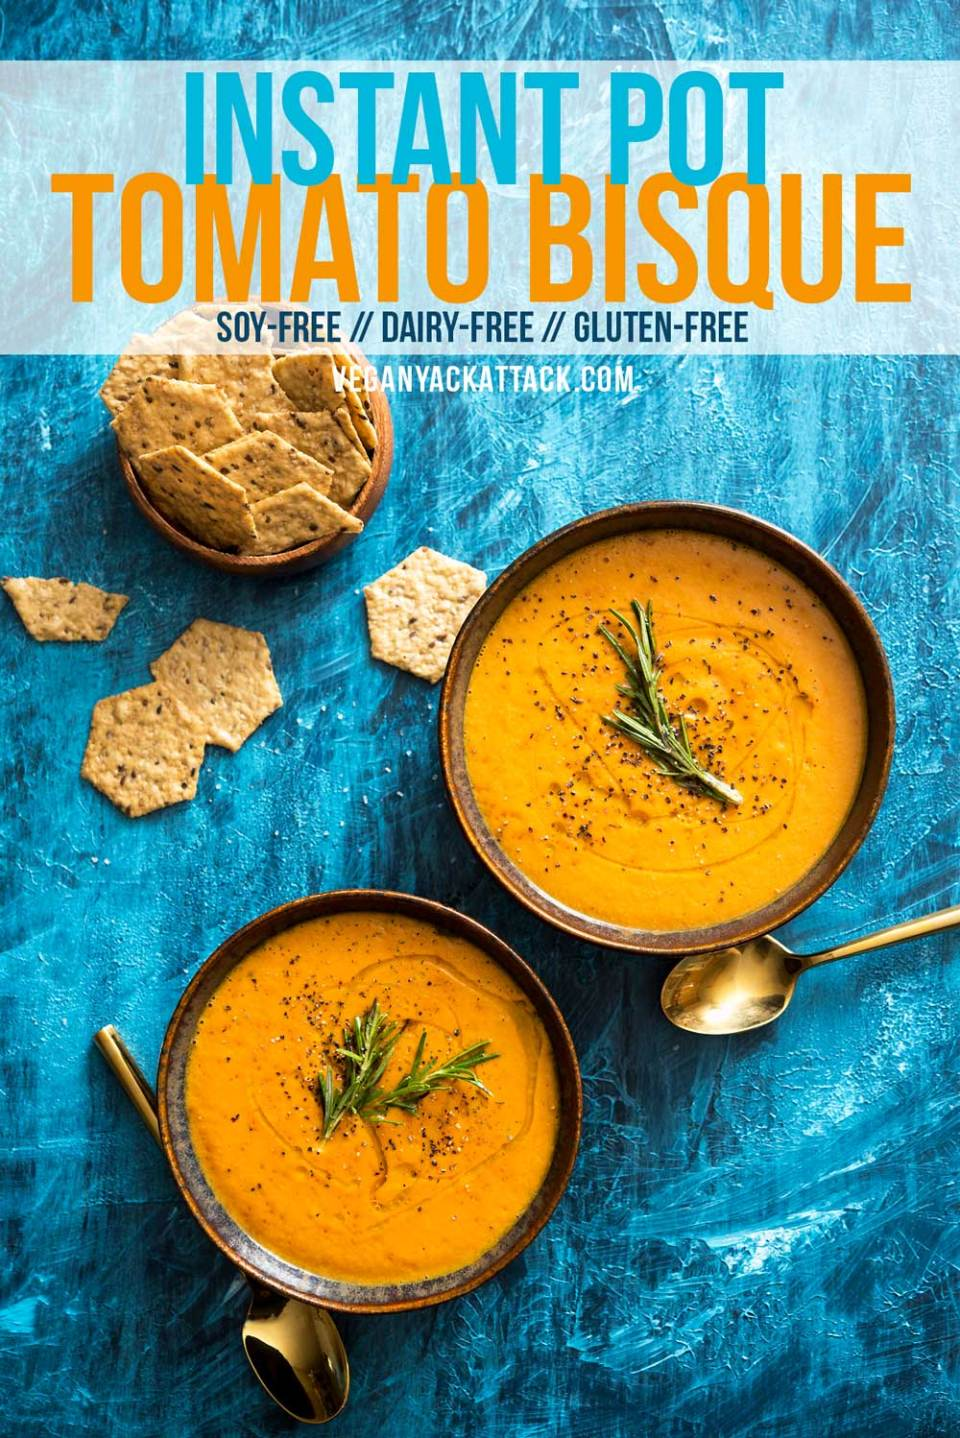 This Instant Pot tomato bisque is a great way to use up a few pound of tomatoes to make a rich and delicious dinner. Vegan, Gluten-free, Soy-free